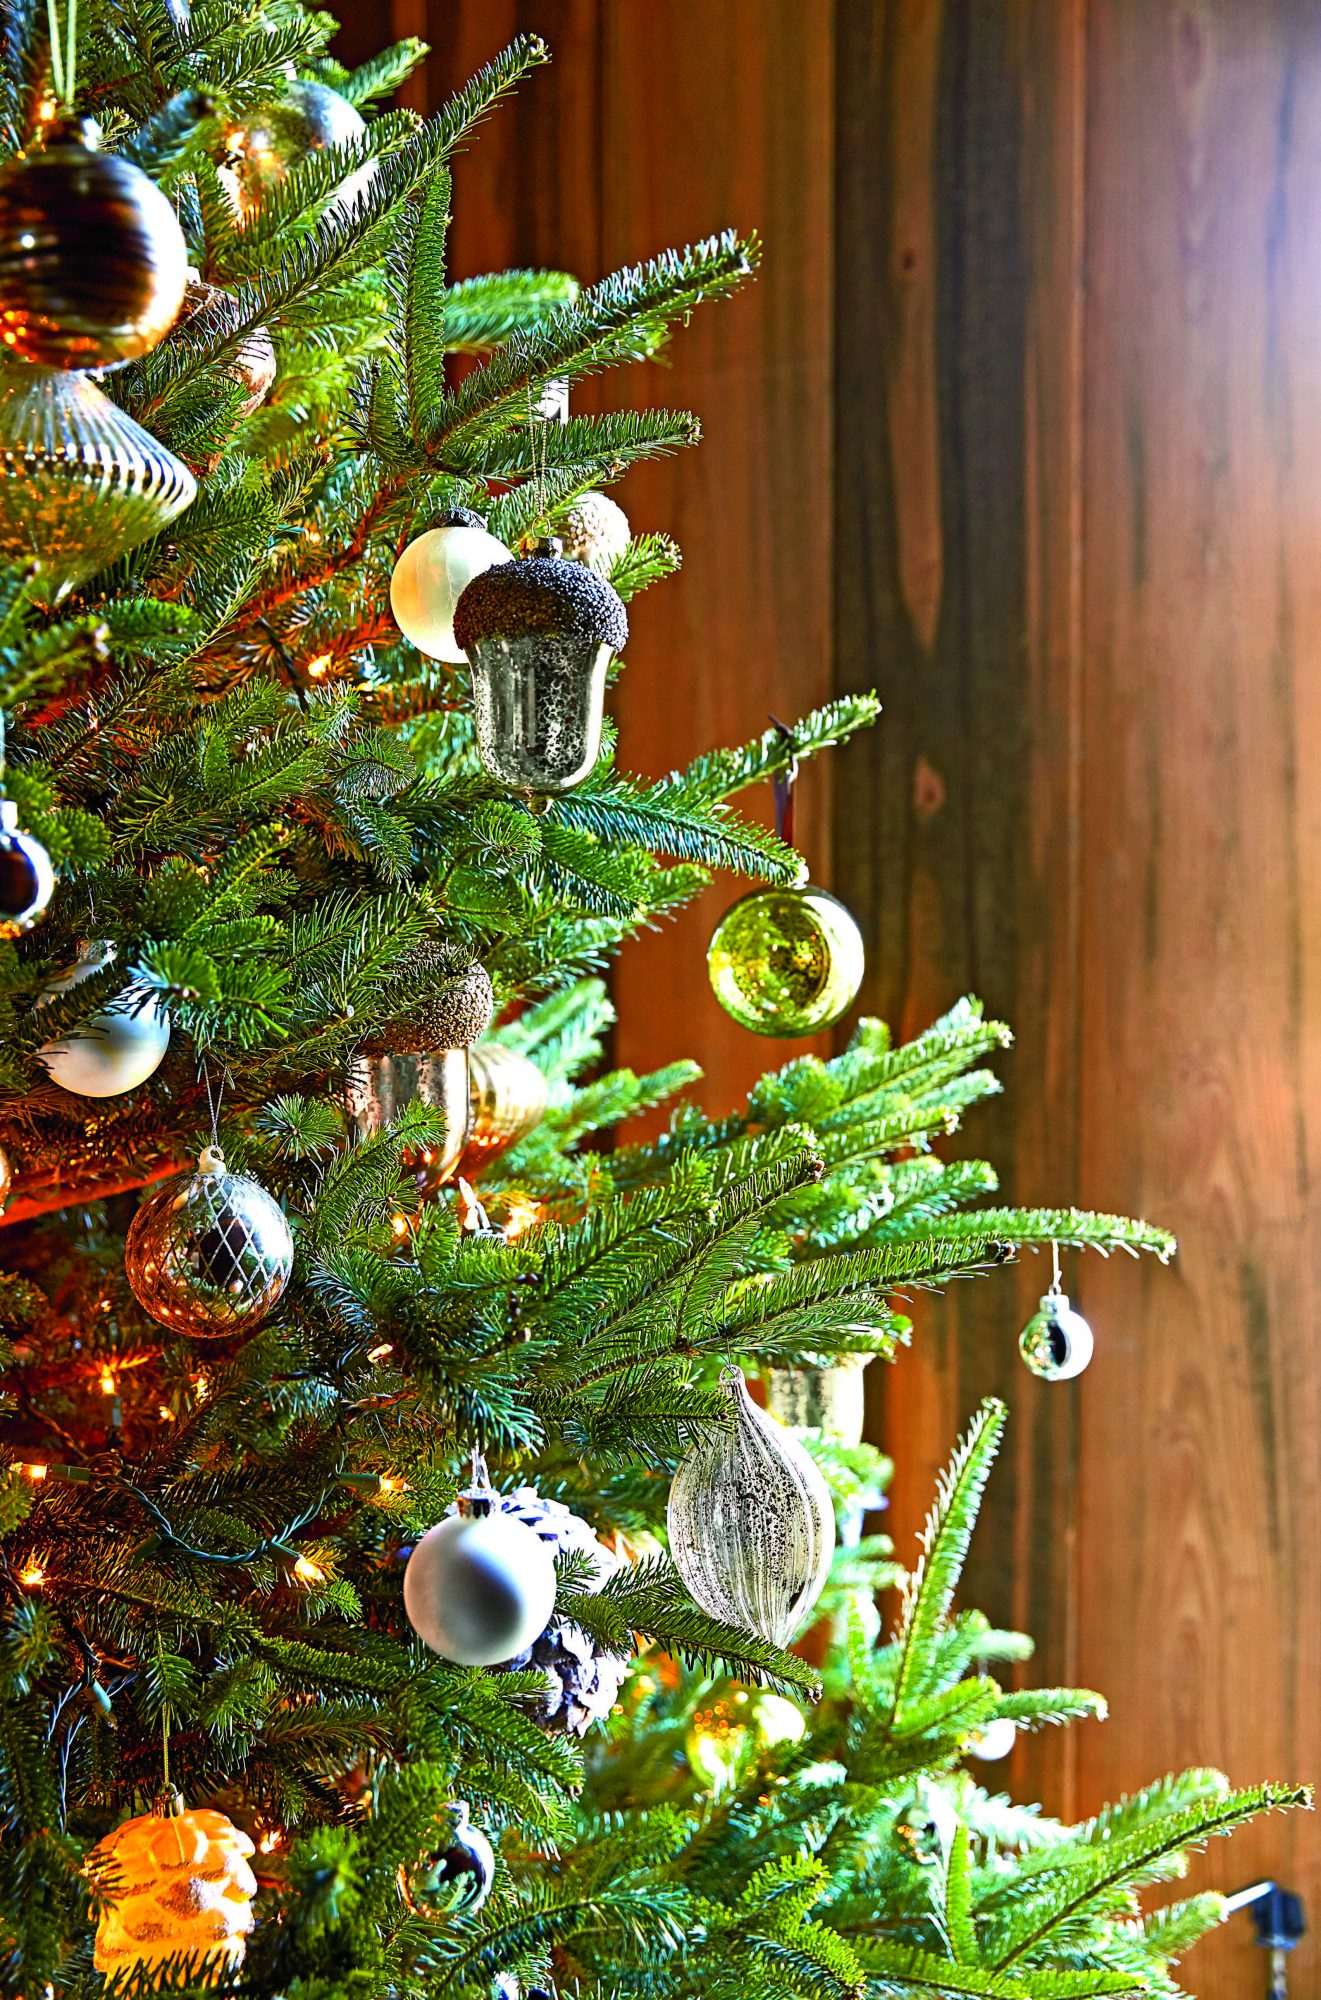 Christmas Tree with Acorn Ornamnets